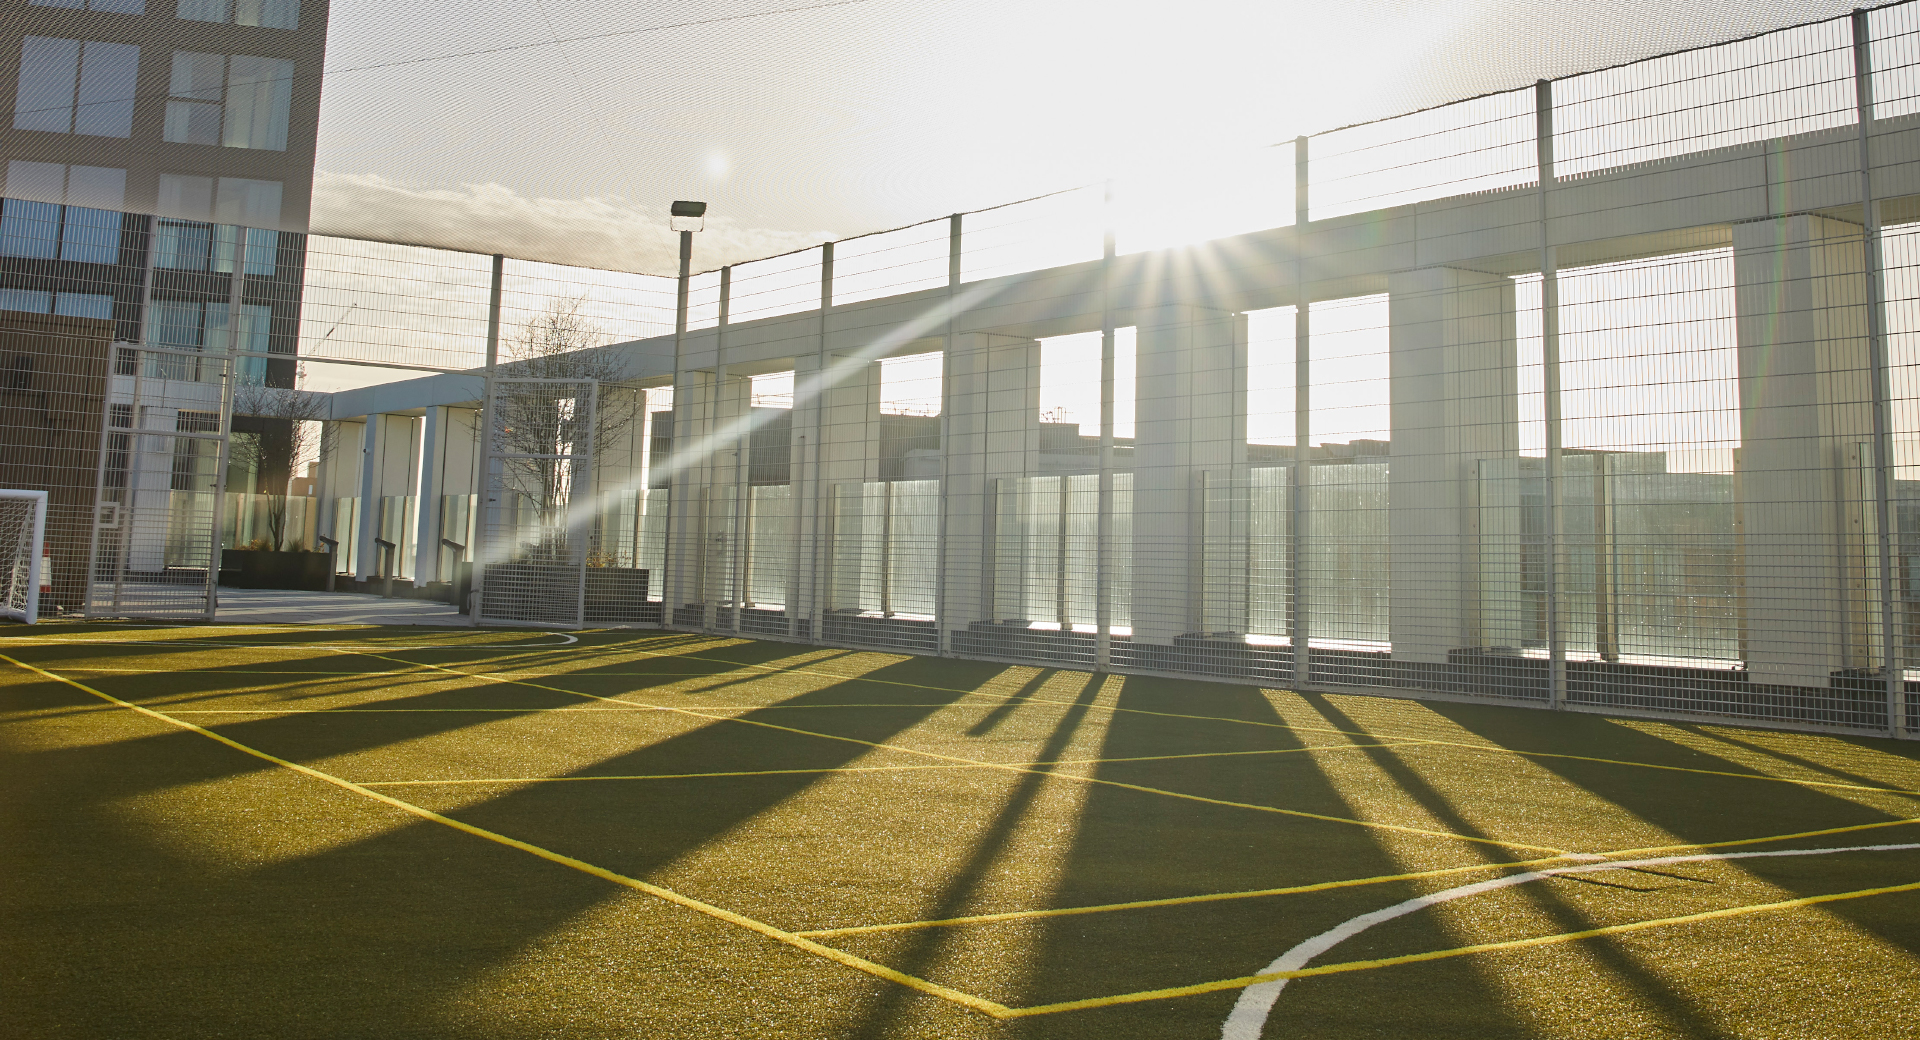 Rooftop sports pitch with goals view of building